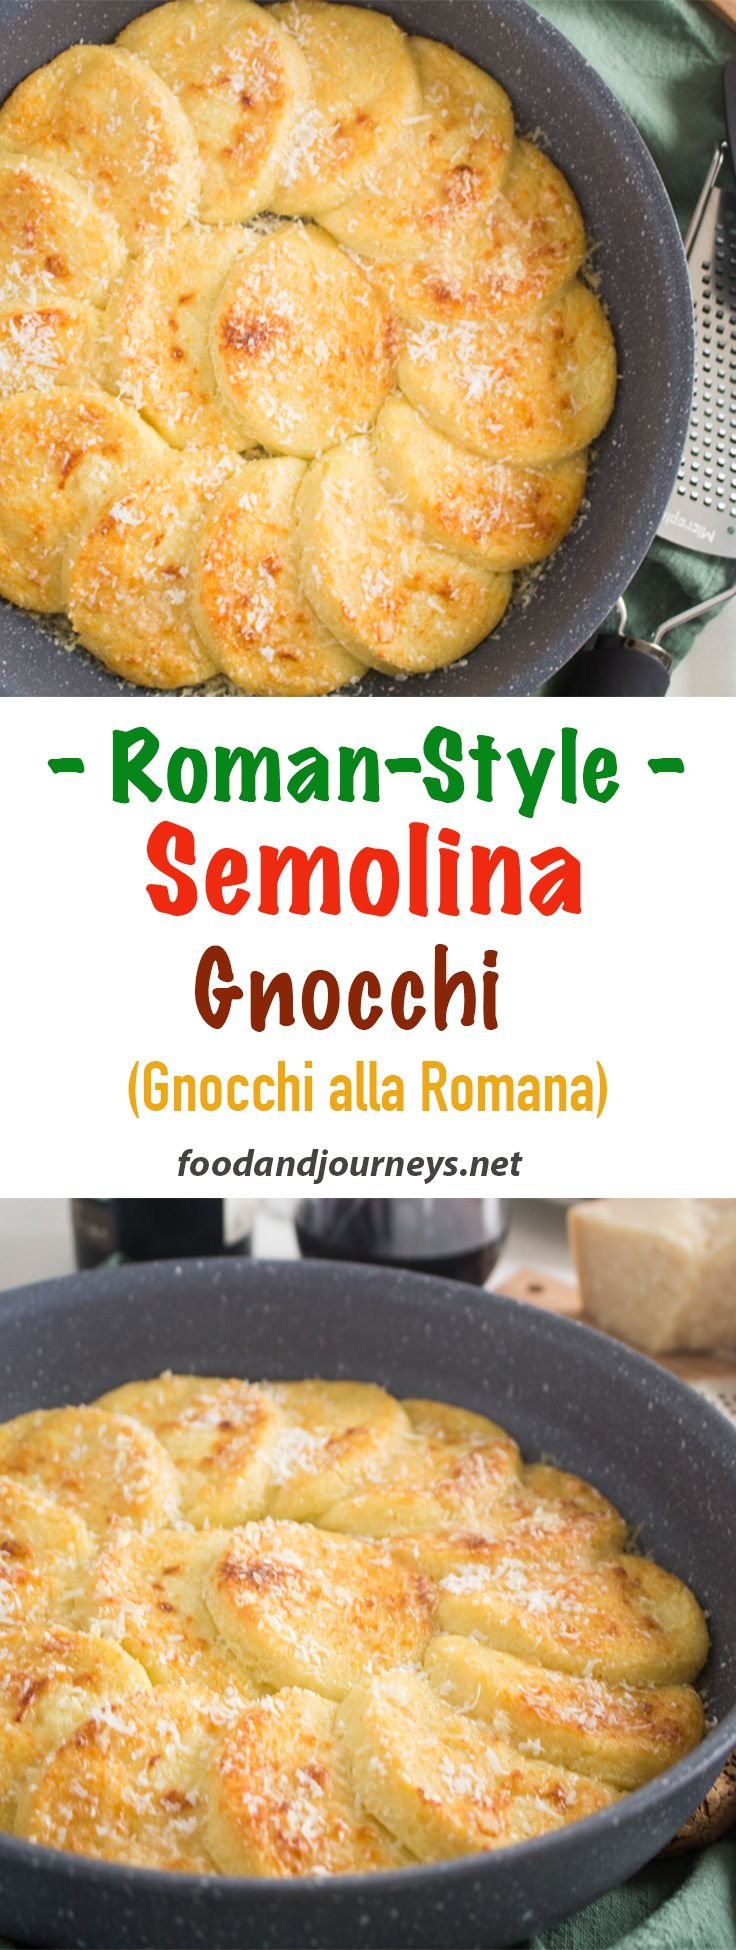 Italian Recipe | Side Dish | Comfort food | Baked Gnocchi. A great alternative to mashed potatoes!  Gnocchi alla Romana (or Roman Style Semolina Gnocchi) is an ideal side dish for grilled or roasted meat.  Creamy &  full of cheese -- simply delicious! #italianrecipes #gnocchirecipes #sidedishrecipes #semolinarecipe